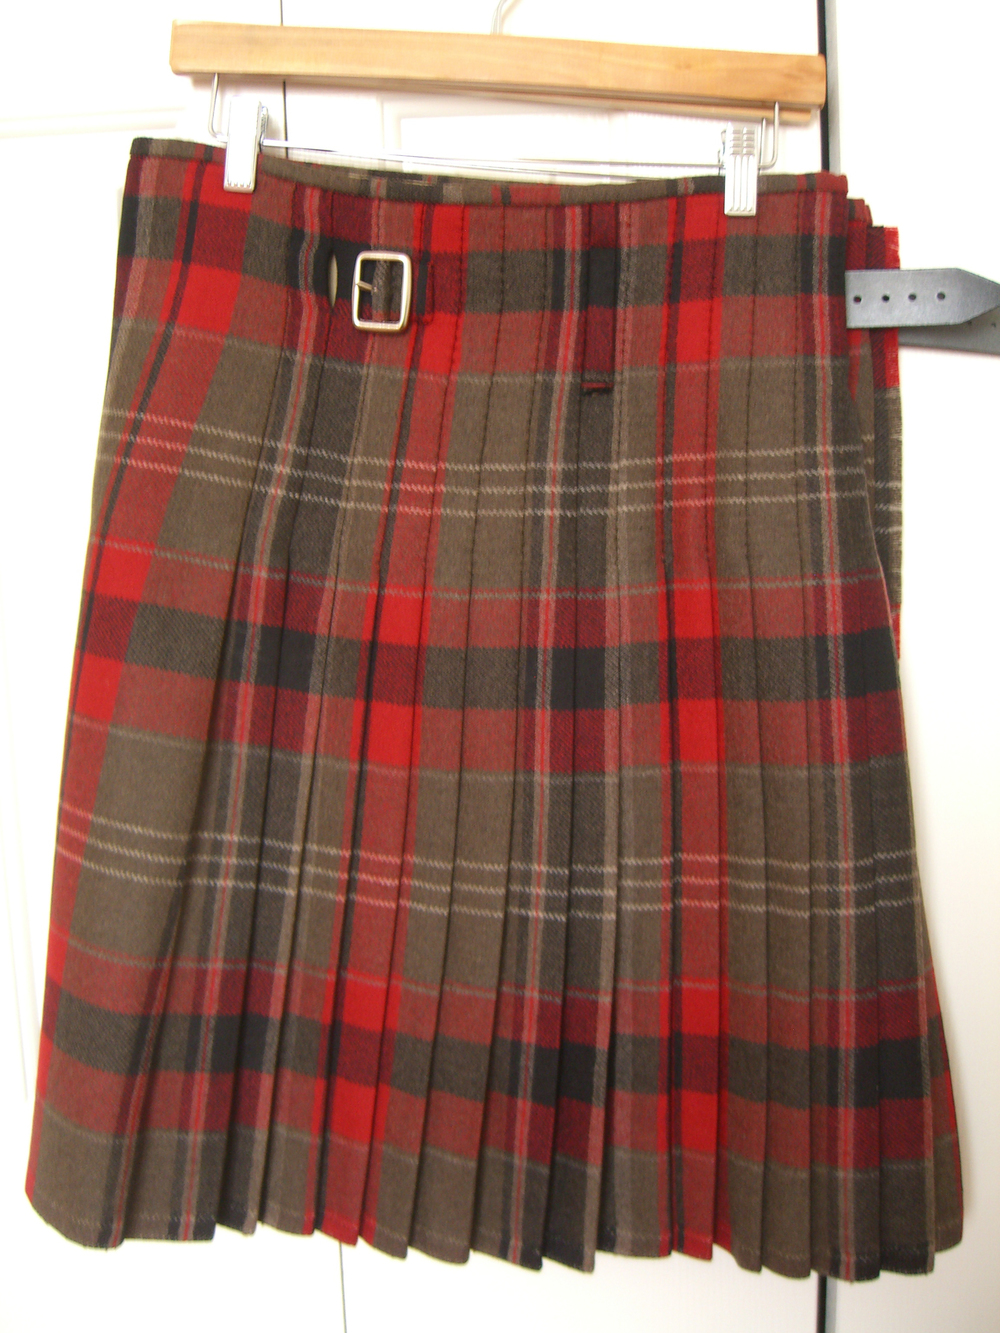 Unnamed Plaid